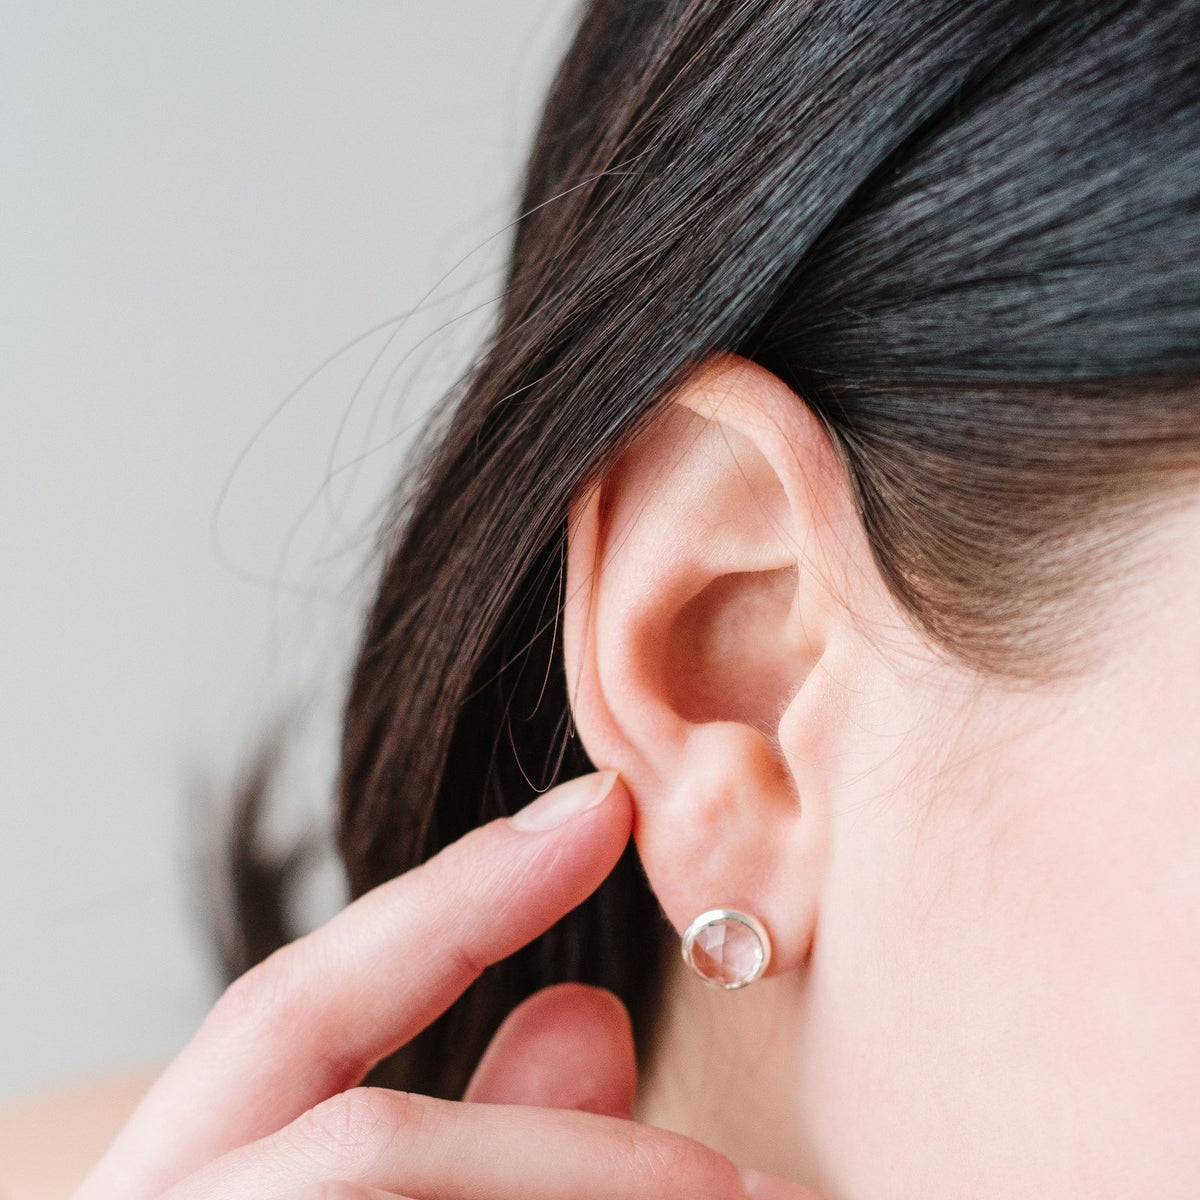 MINI ACCEPT STUD EARRINGS - WHITE TOPAZ & SILVER - SO PRETTY CARA COTTER